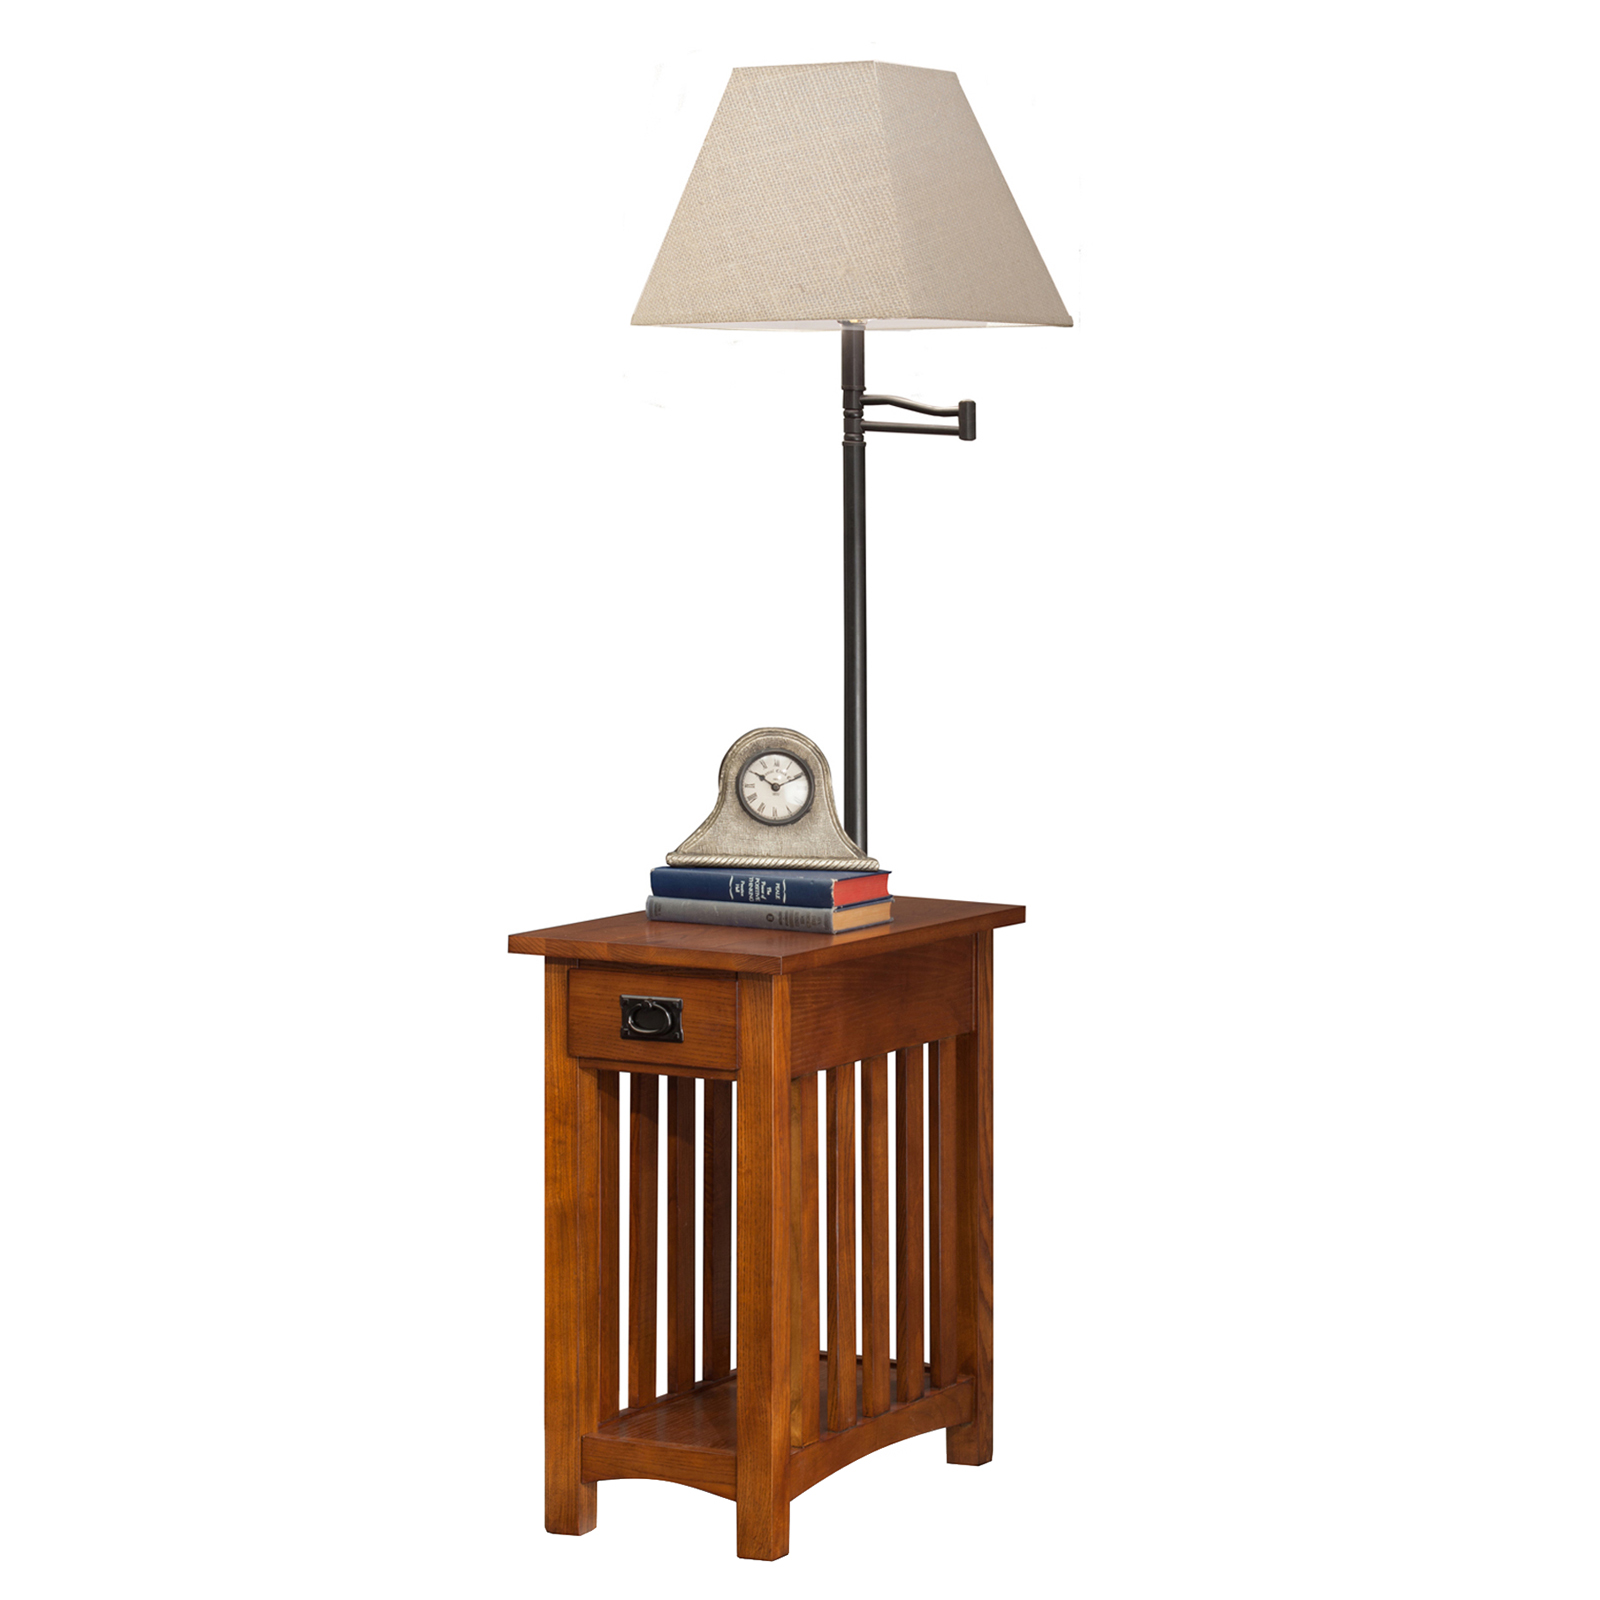 Leick Laurent Mission Chairside Lamp Table End Tables at